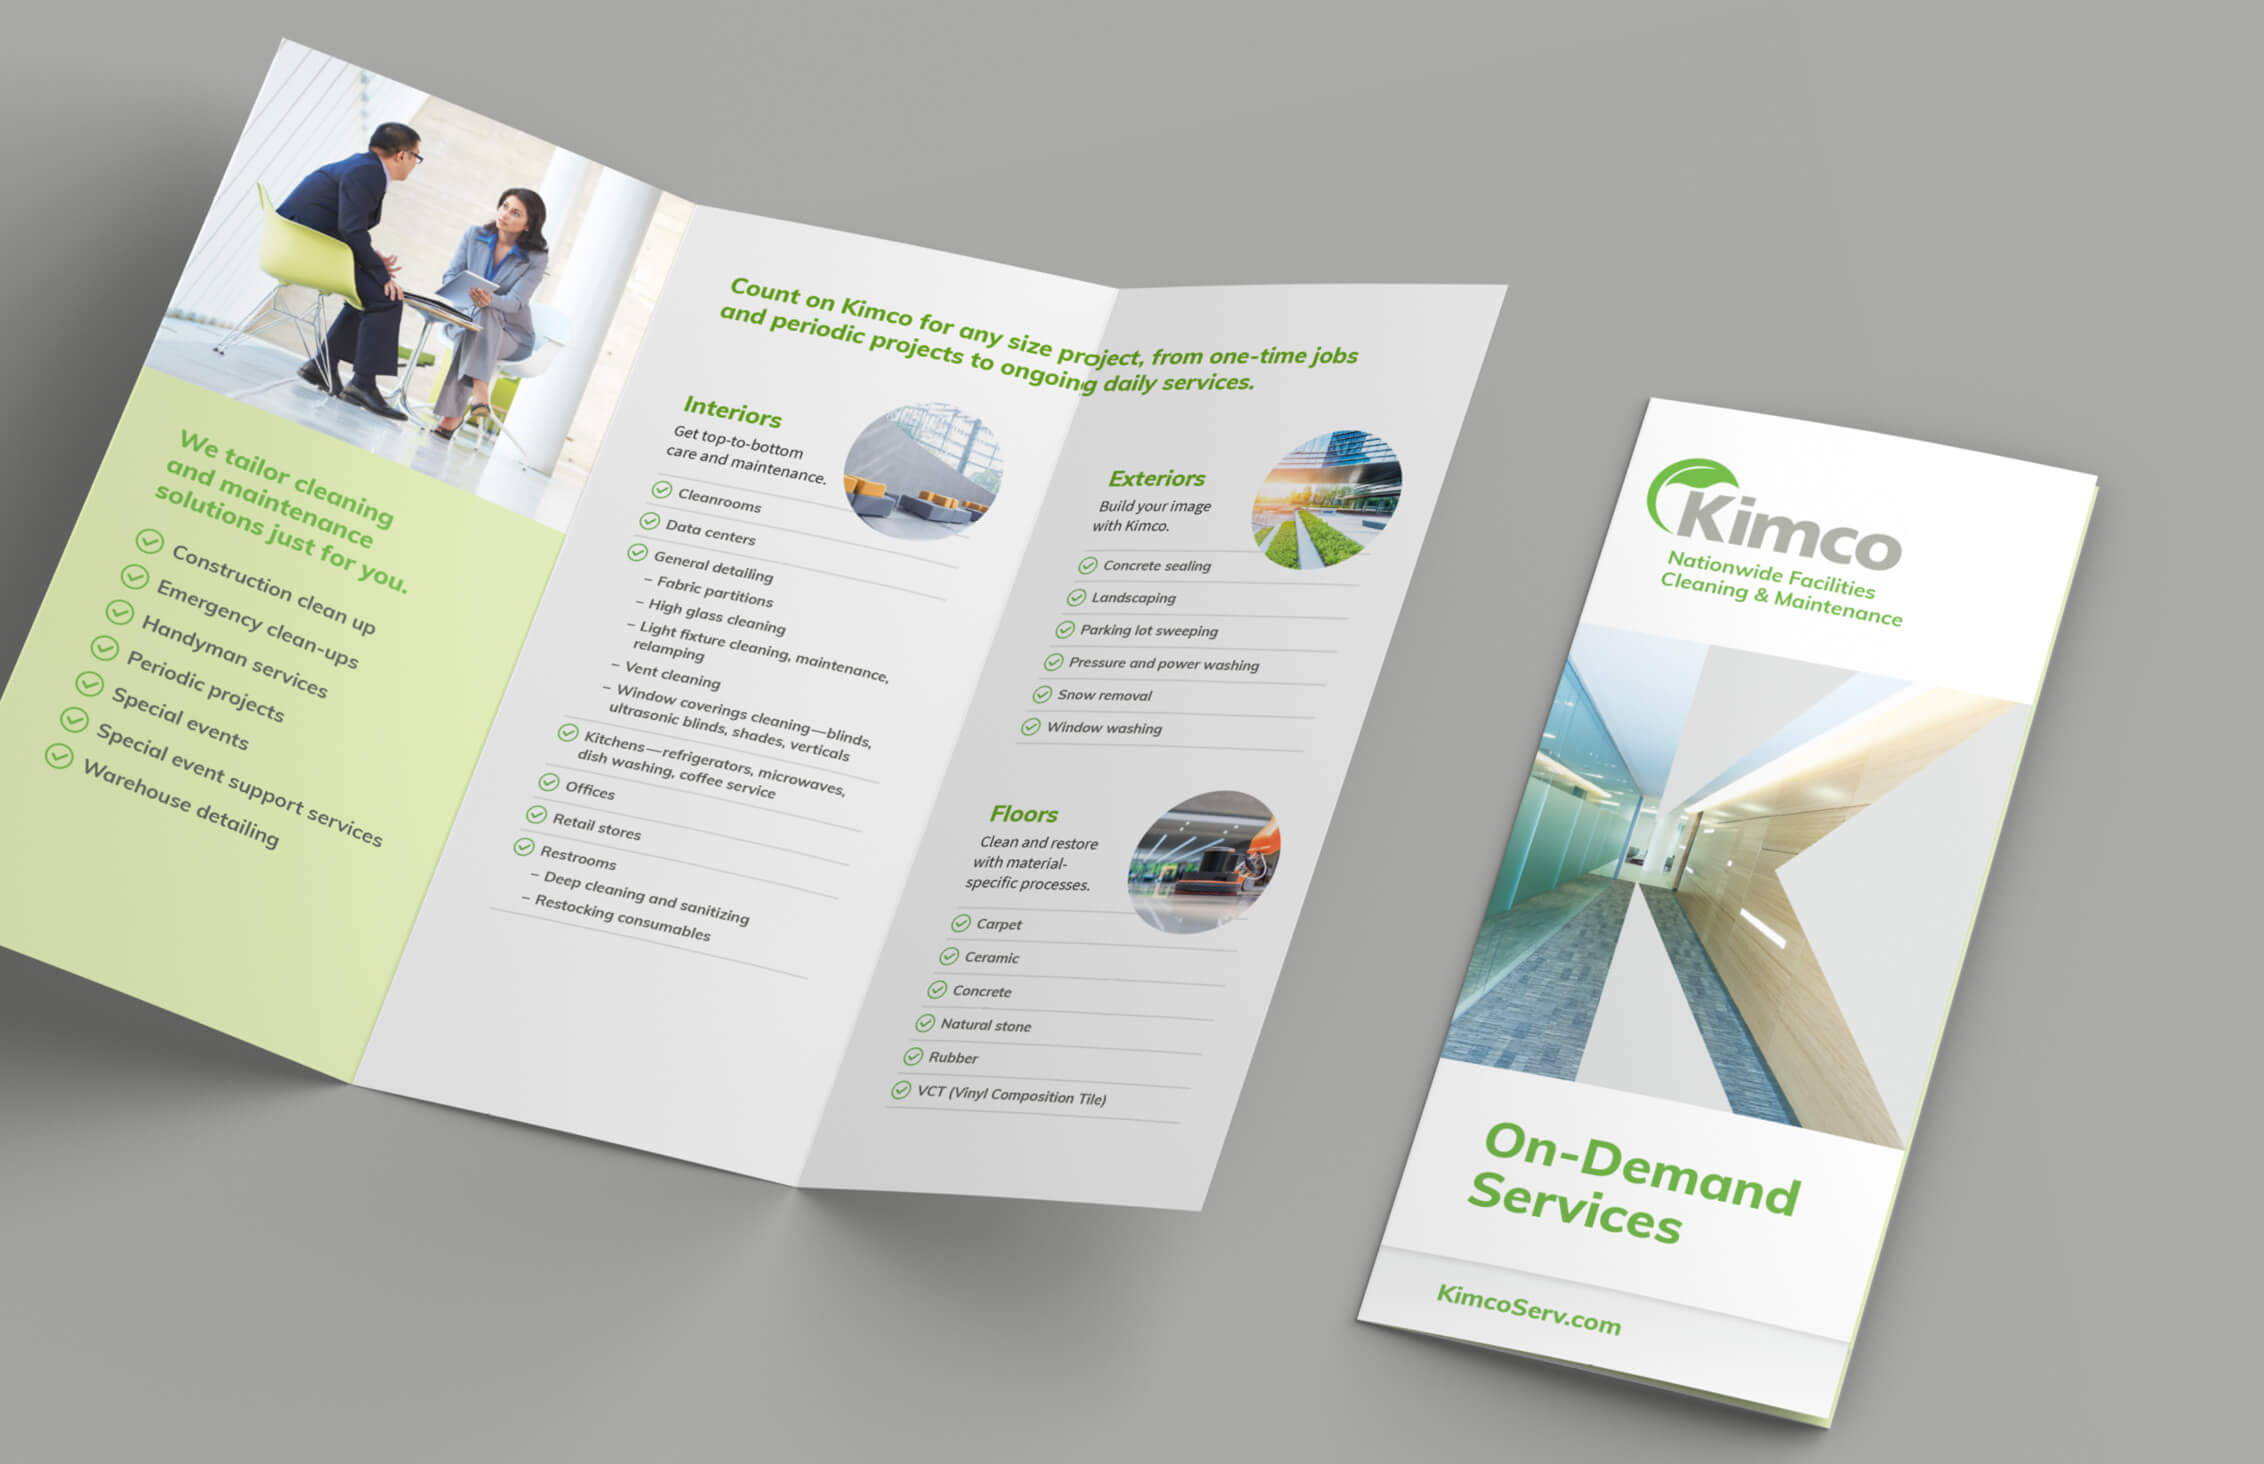 Kimco trifold brochure opened to show inside and cover